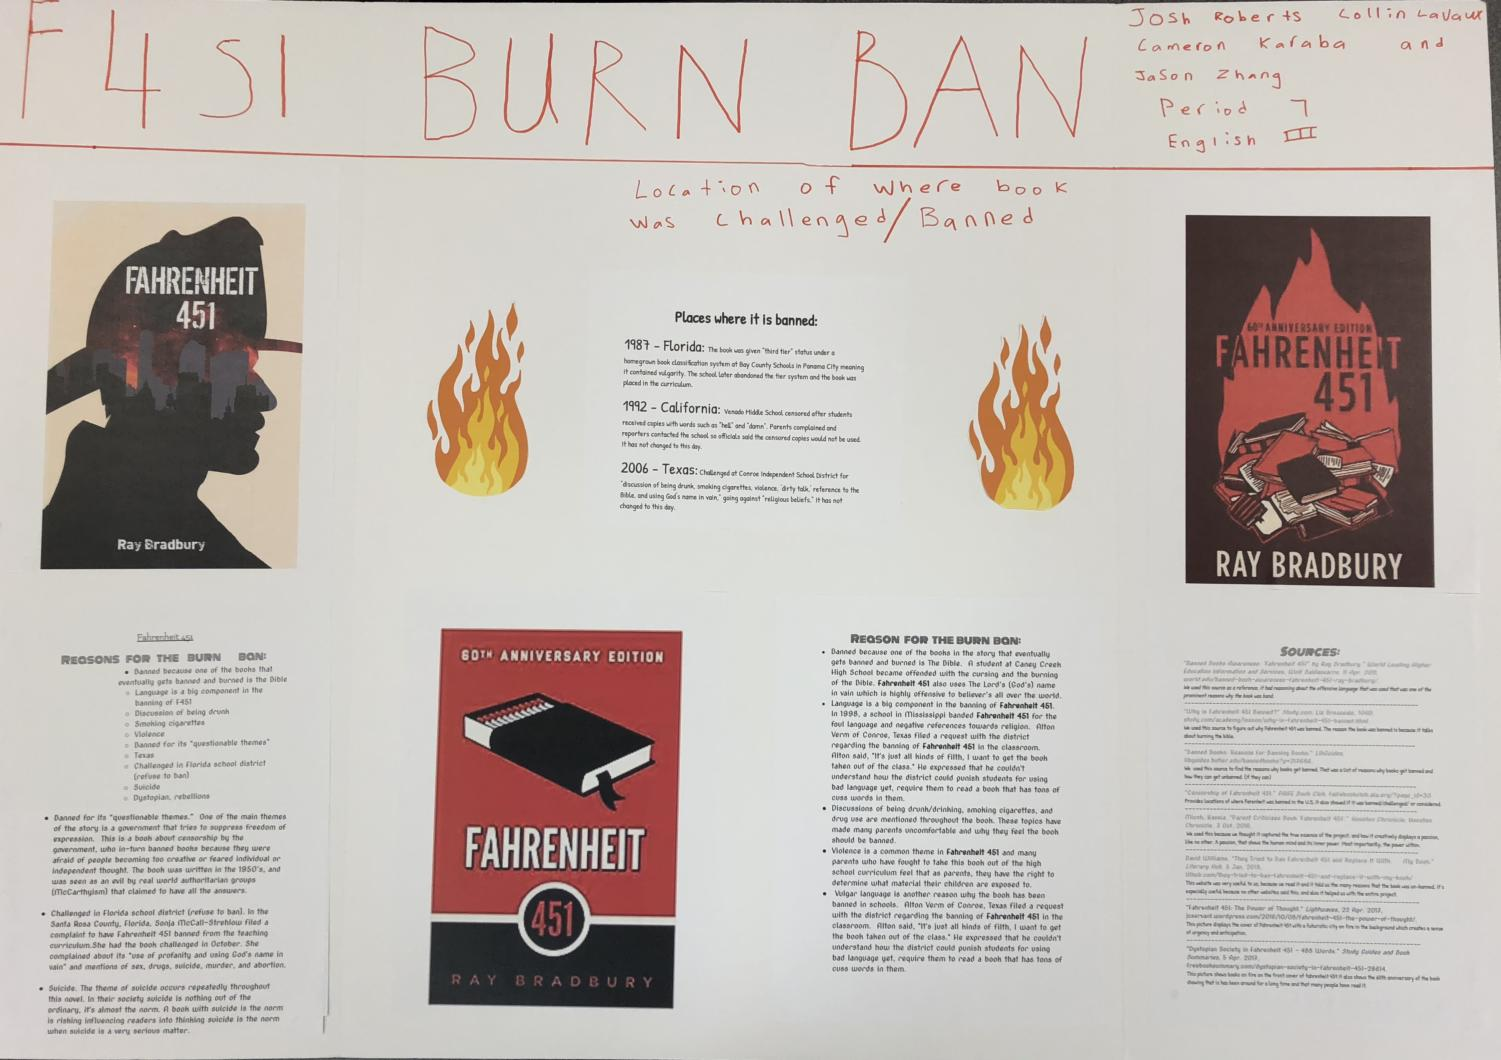 Period 7 English III students Cameron Karaba '20, Josh Roberts '20, Collin Lavaux '20, and Jason Zhang '20 discuss banned book Fahrenheit 451 in a poster for class.